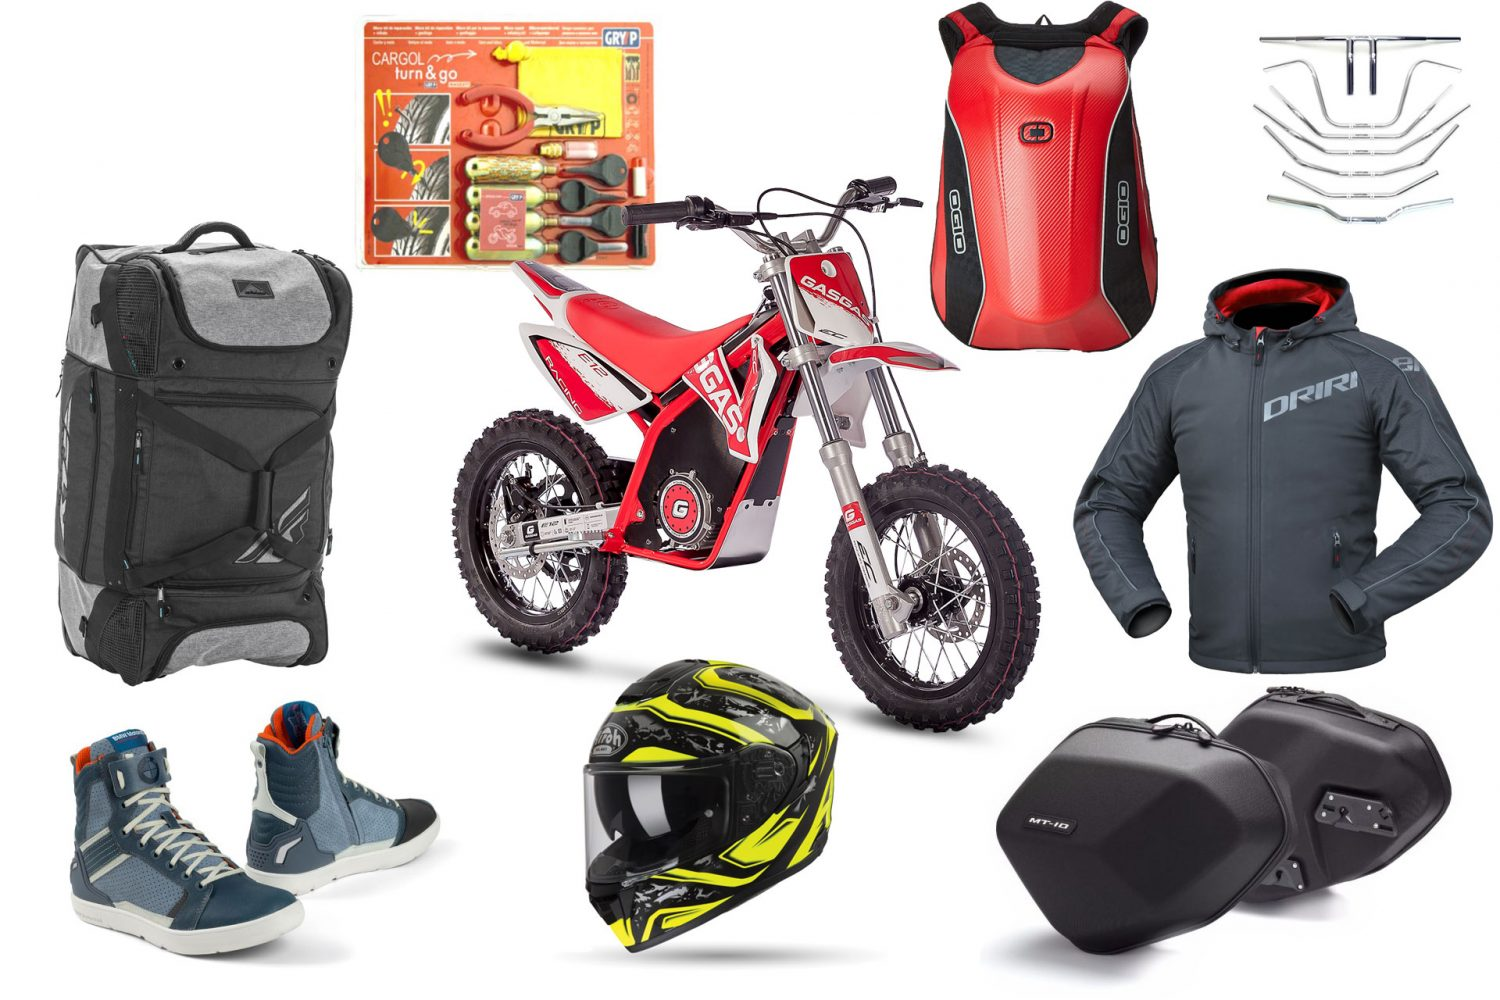 BikeReview.com.au 2018 Christmas Guide